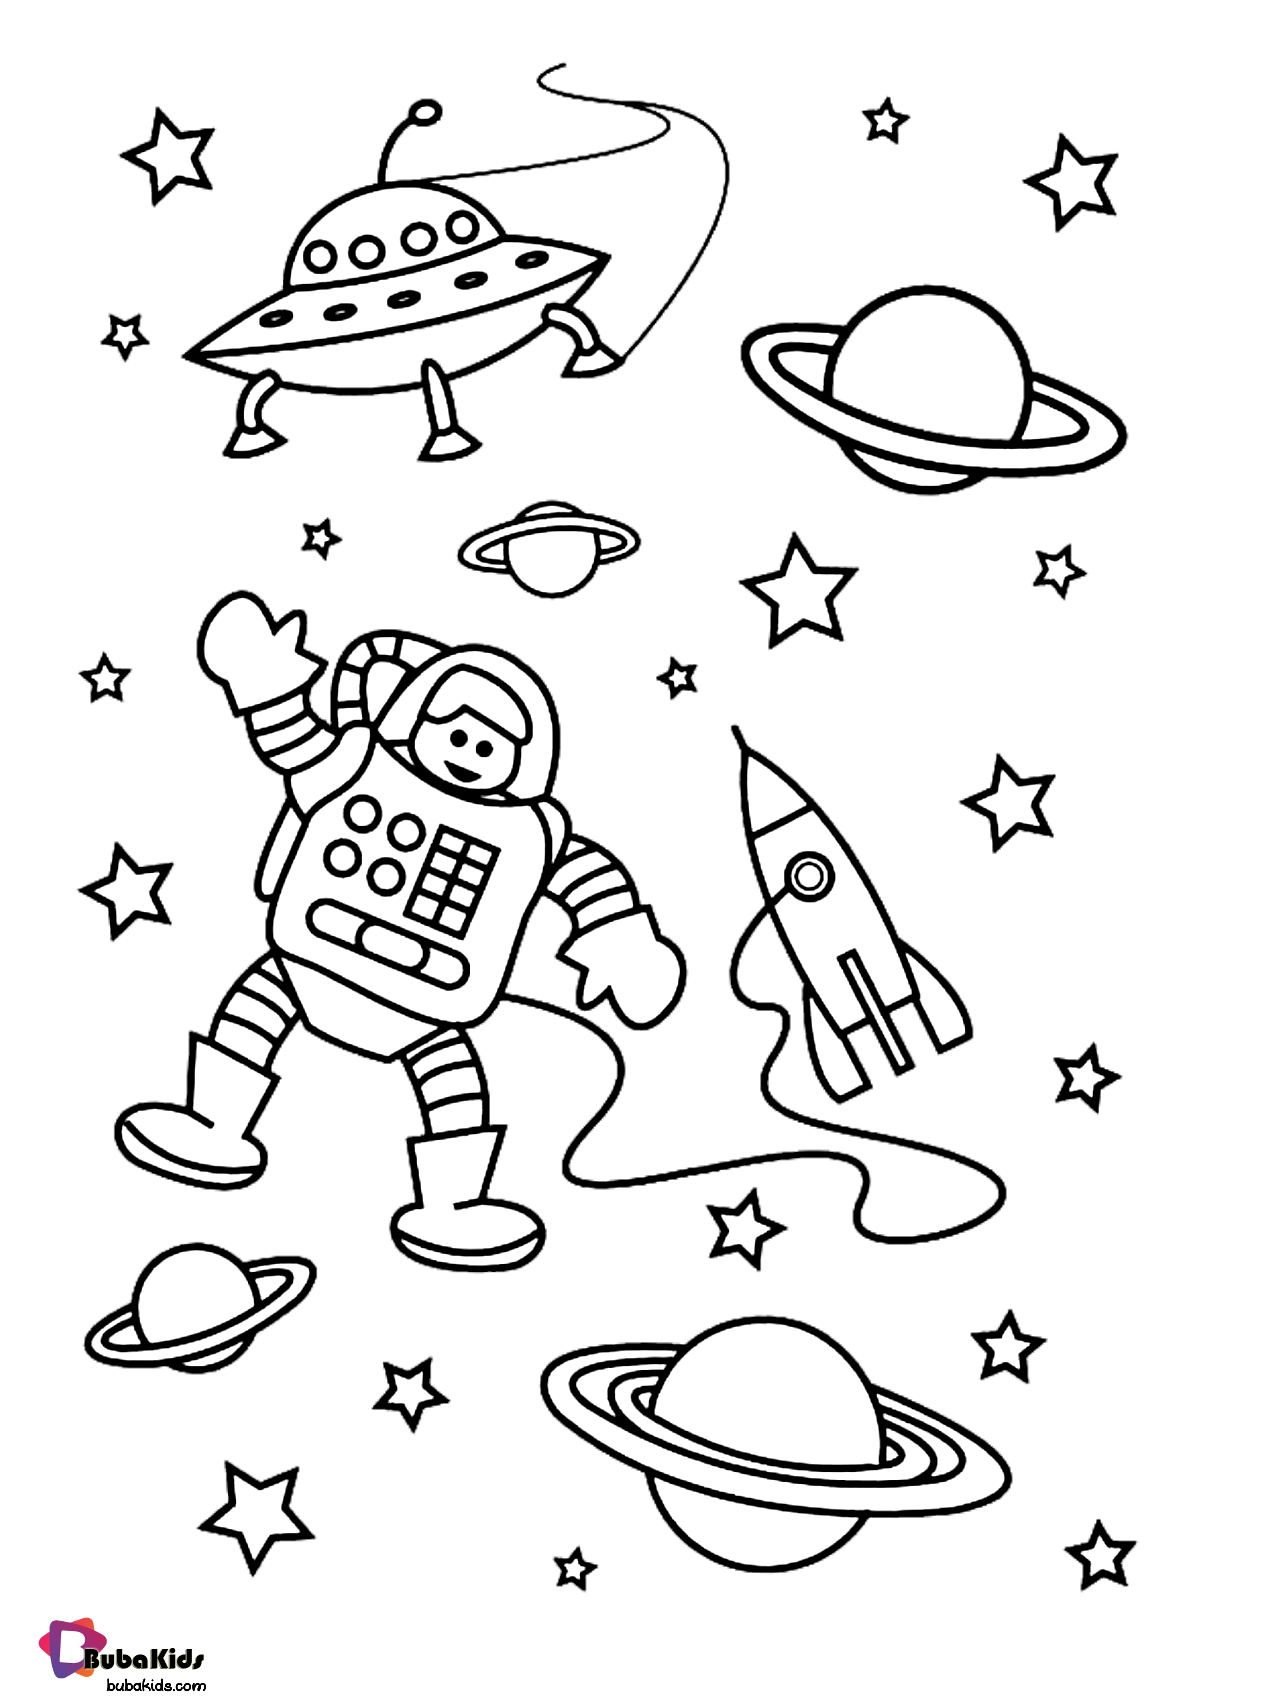 Astronaut In Outer Space Coloring Page Free Download To Print Collection Of Cartoon Coloring P In 2020 Space Coloring Pages Earth Coloring Pages Space Coloring Sheet